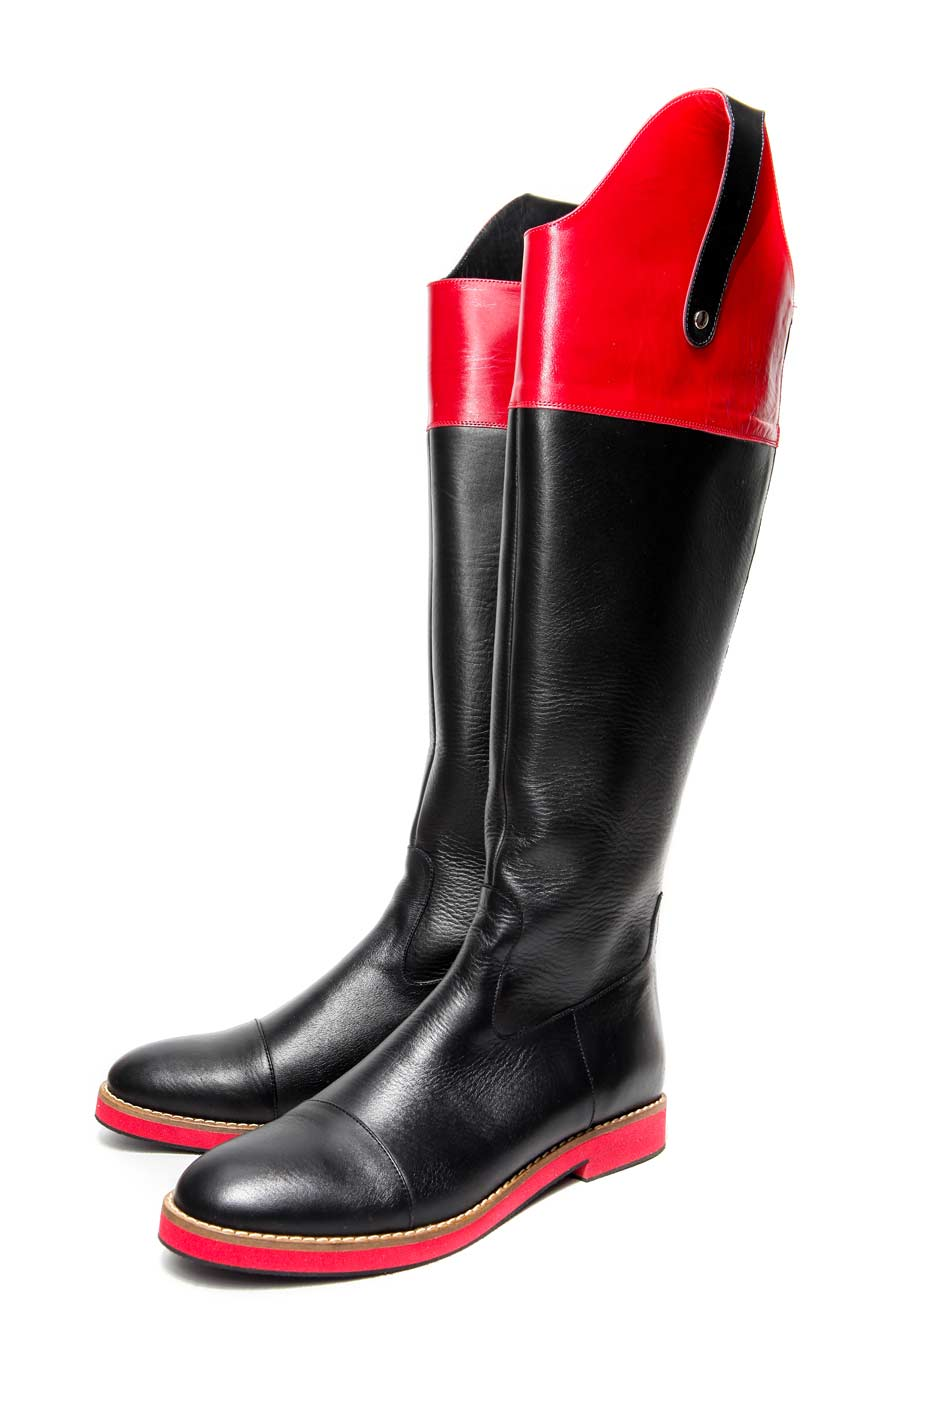 Womens riding boots | Knee high boots